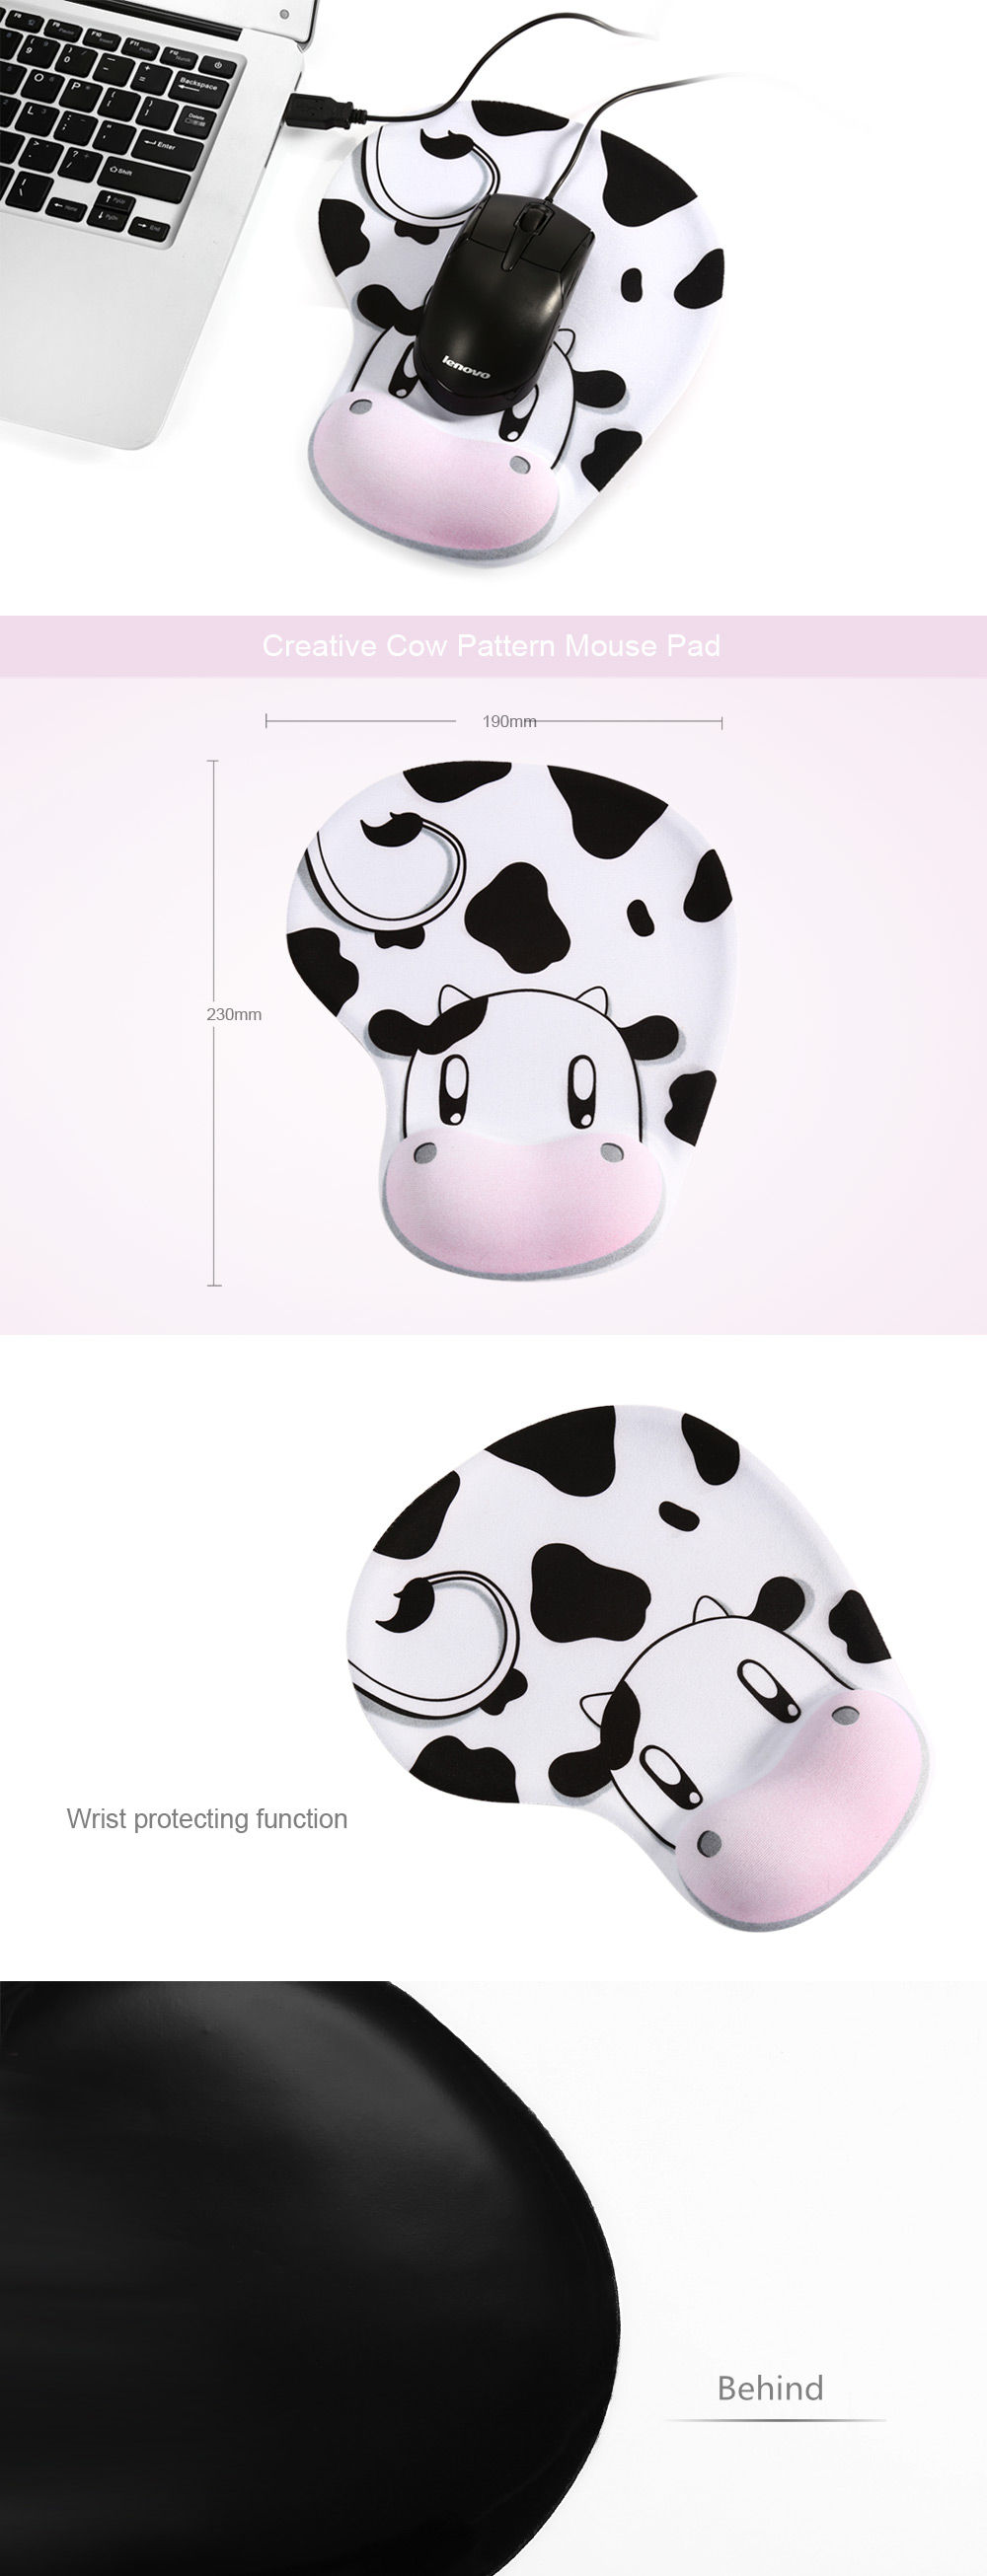 Cow Pattern Slip-proof Mouse Pad with Wrist Protecting Function